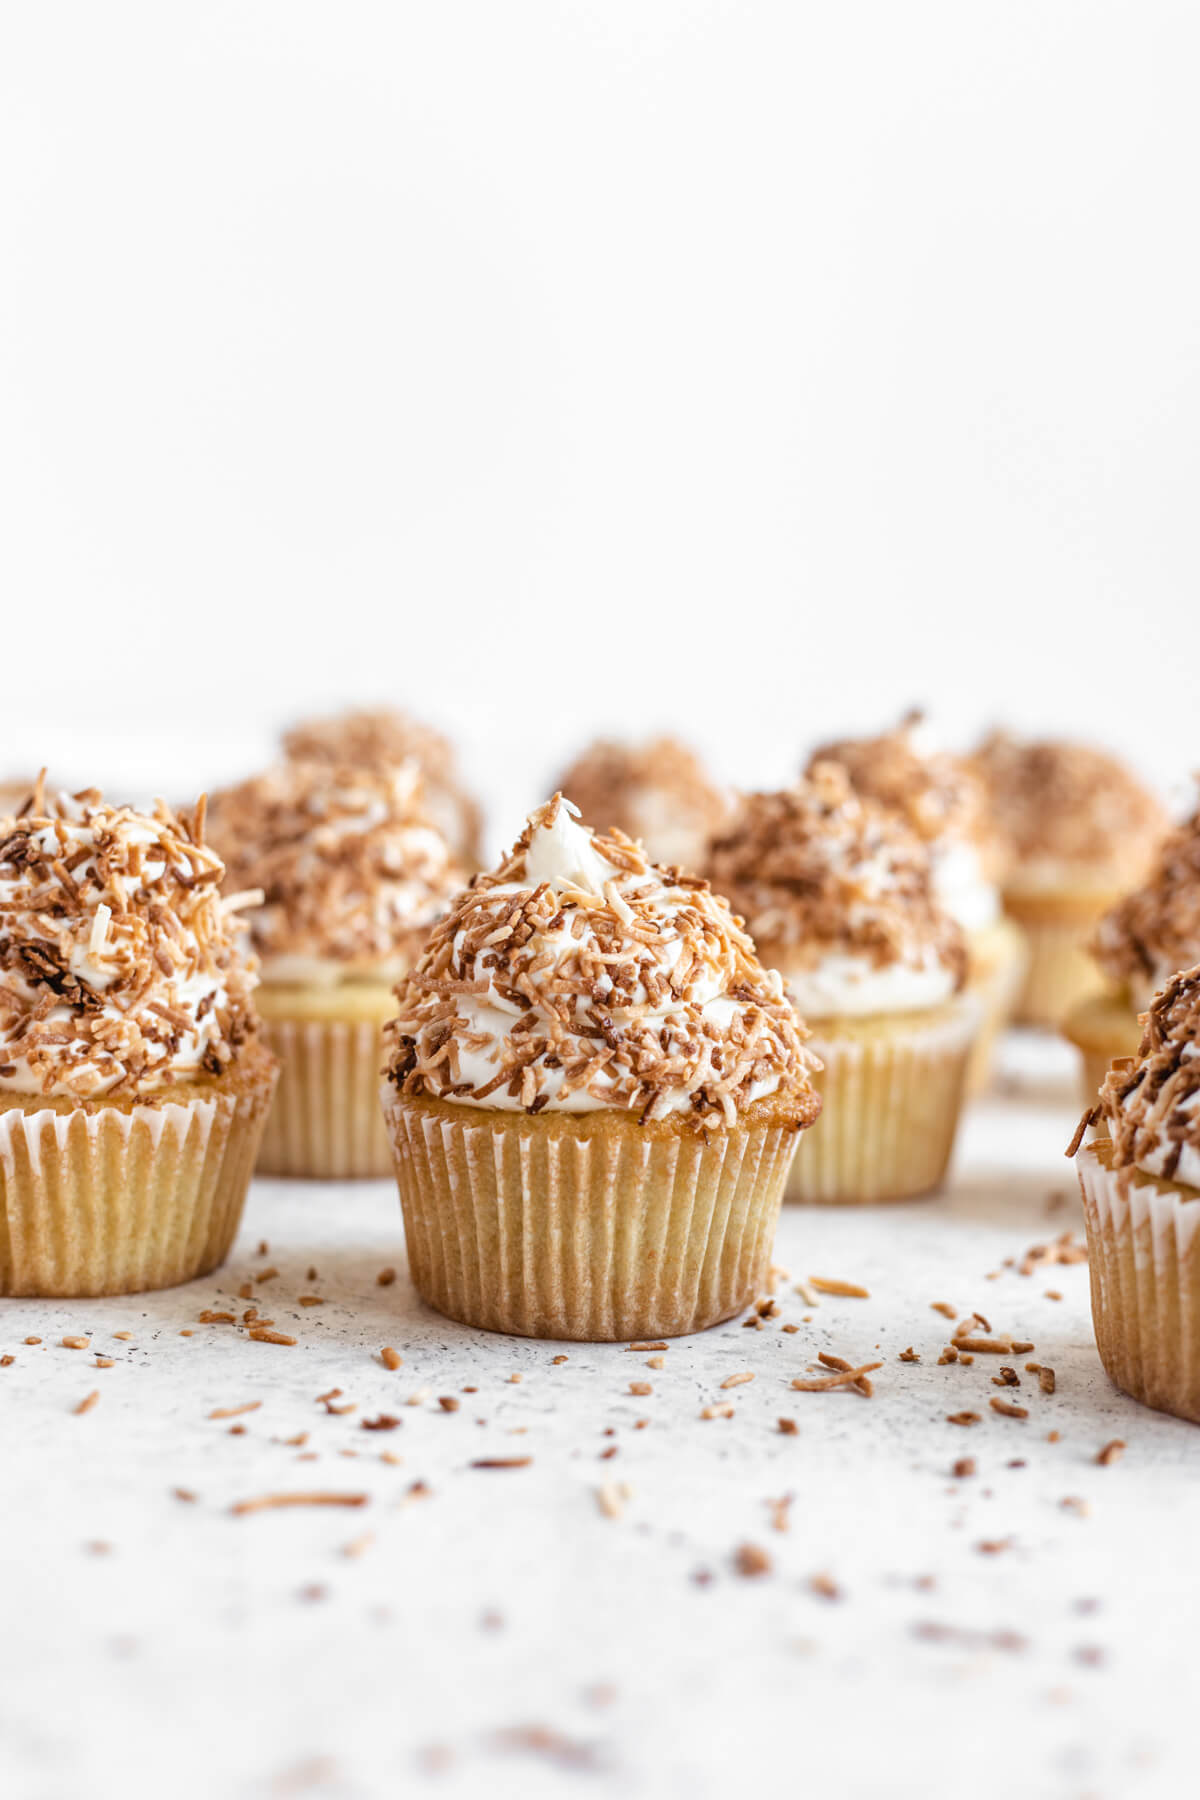 cupcakes topped with toasted coconut